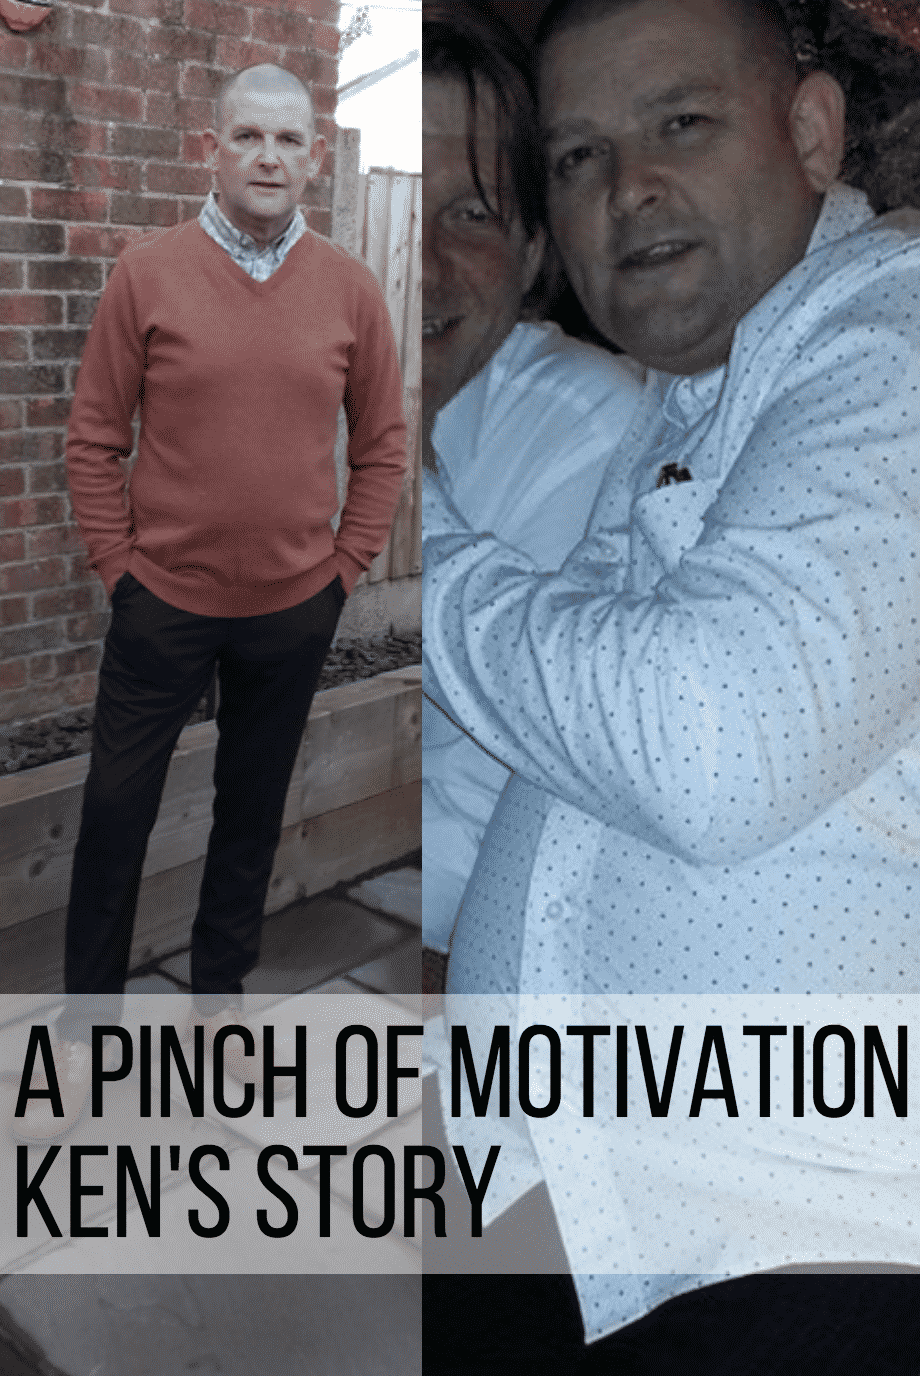 motivation kens story first image NEW